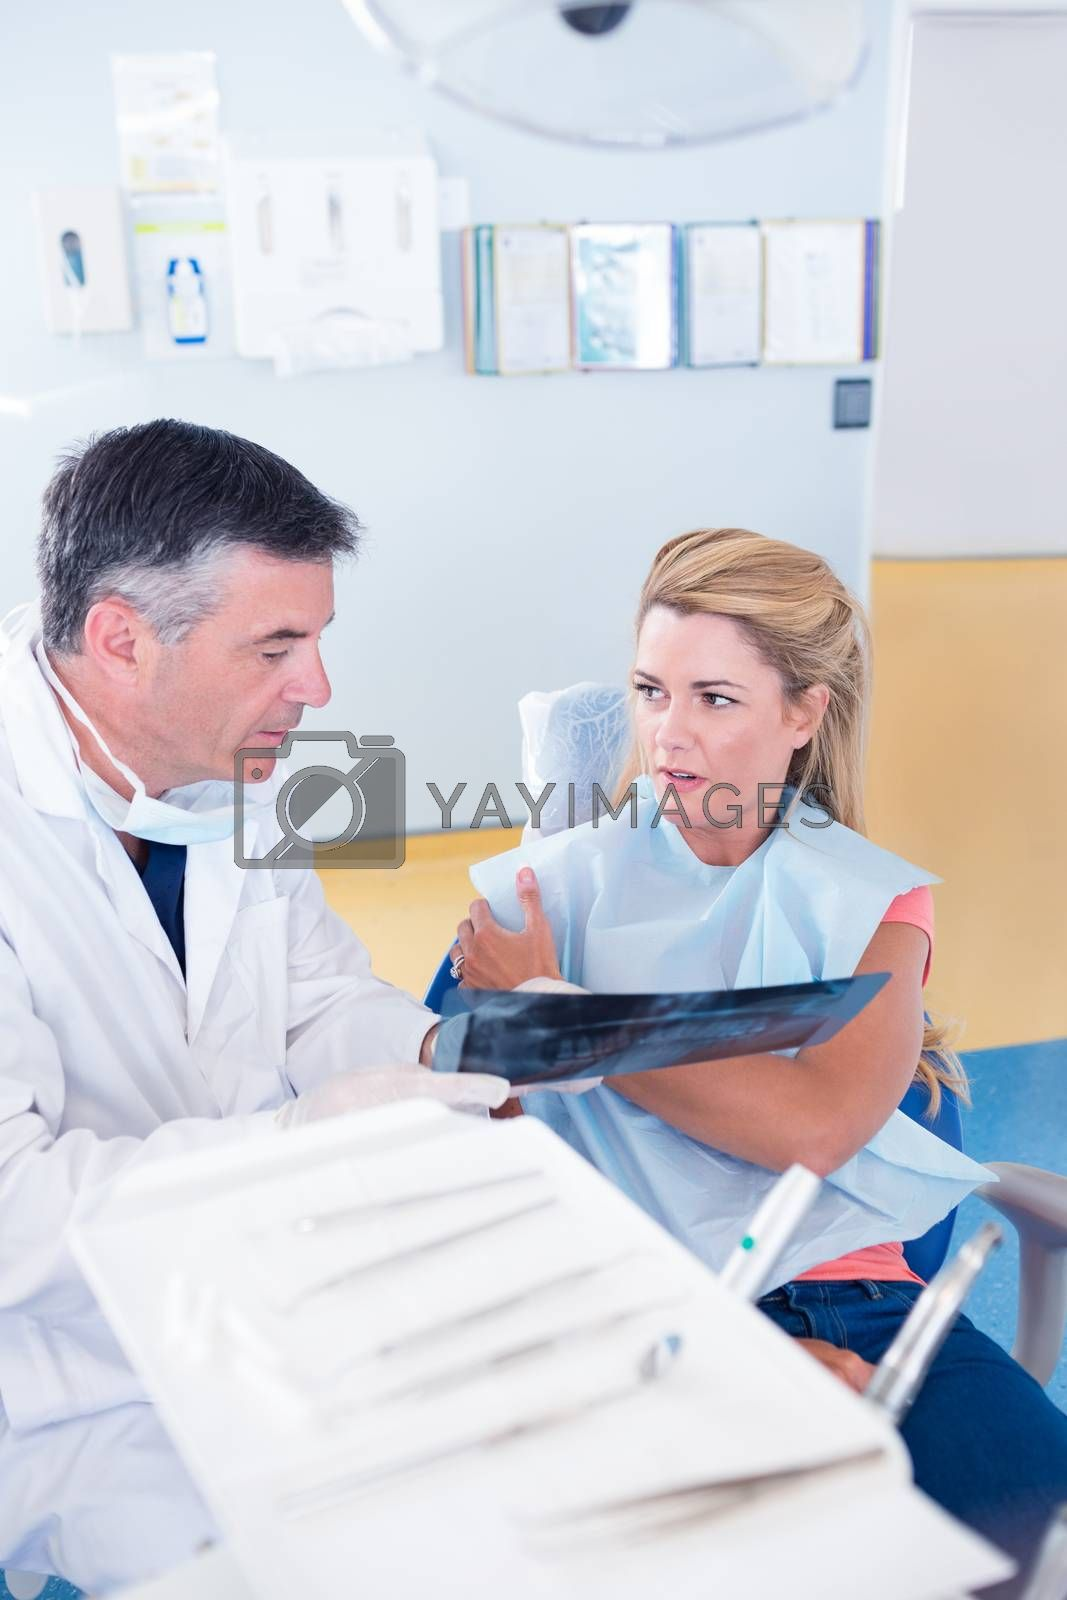 Dentist discussing x-ray with his patient by Wavebreakmedia